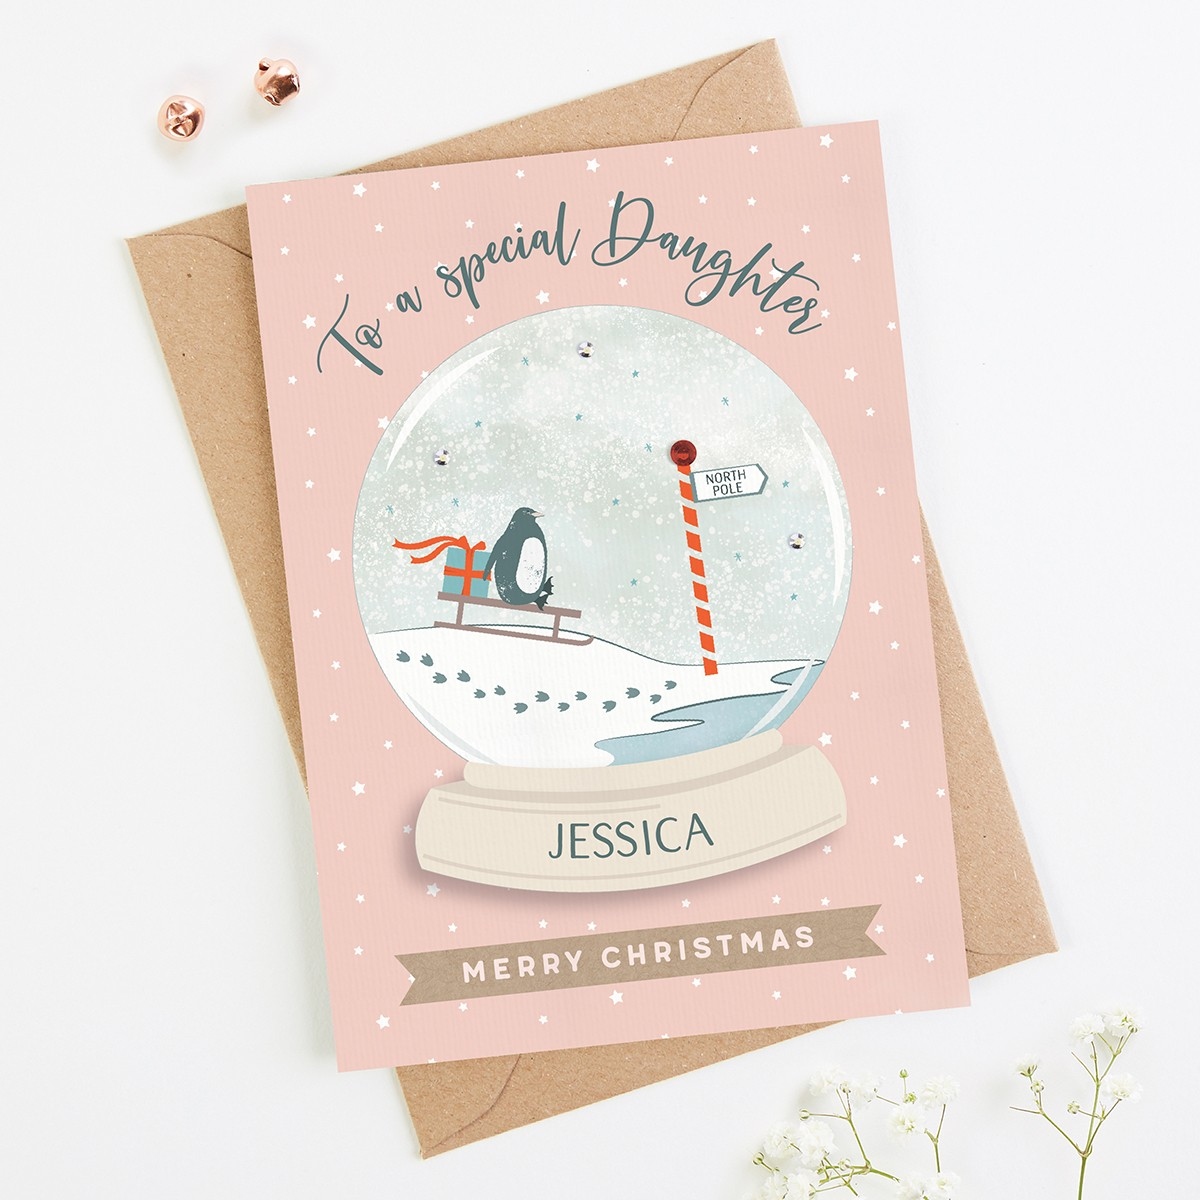 Daughter Christmas Card Personalised - norma&dorothy